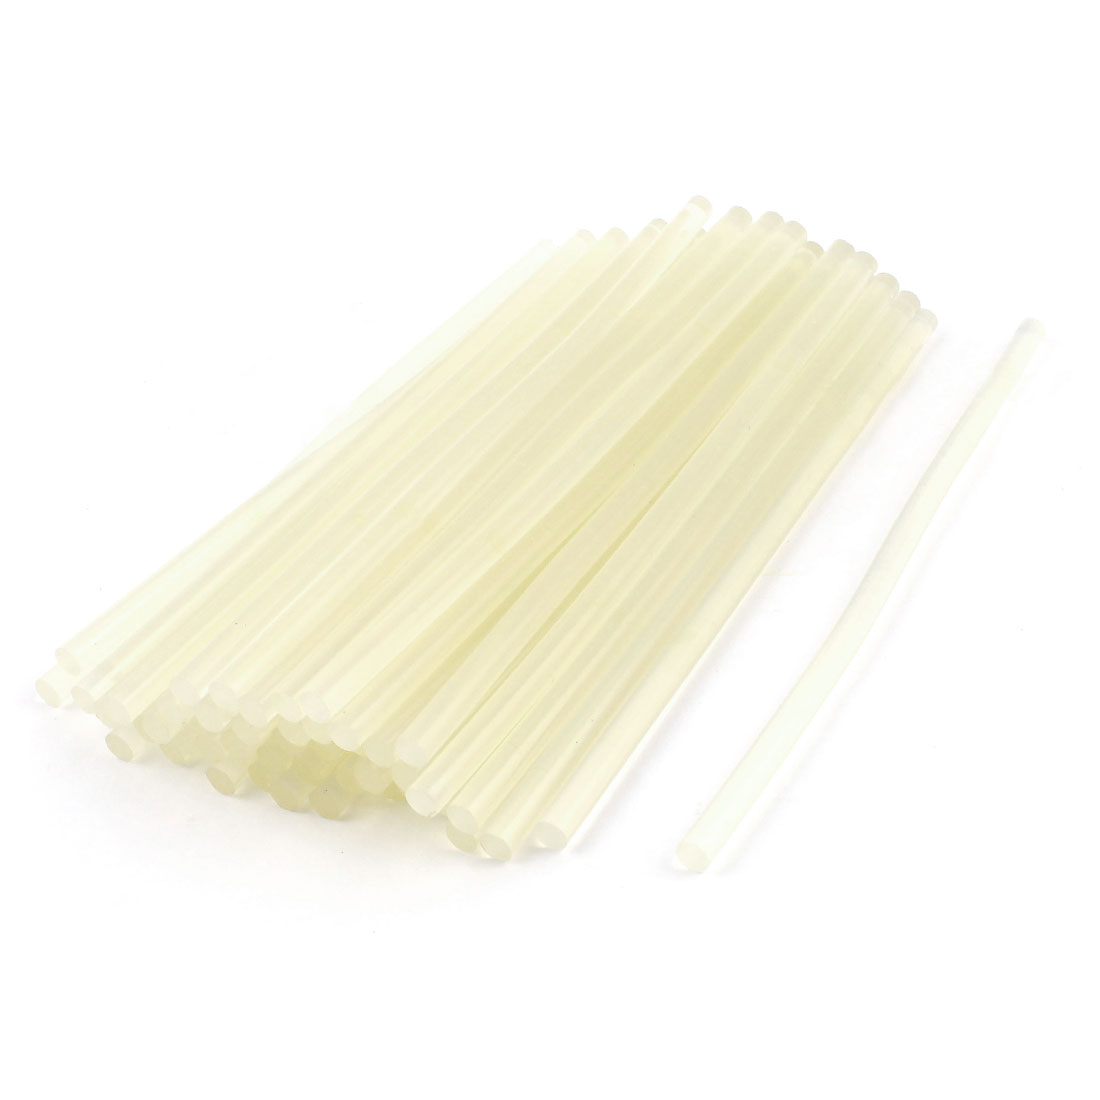 50 Pcs Clear White 7mm Dia Soldering Iron Hot Melt Glue Stick 200mm Long